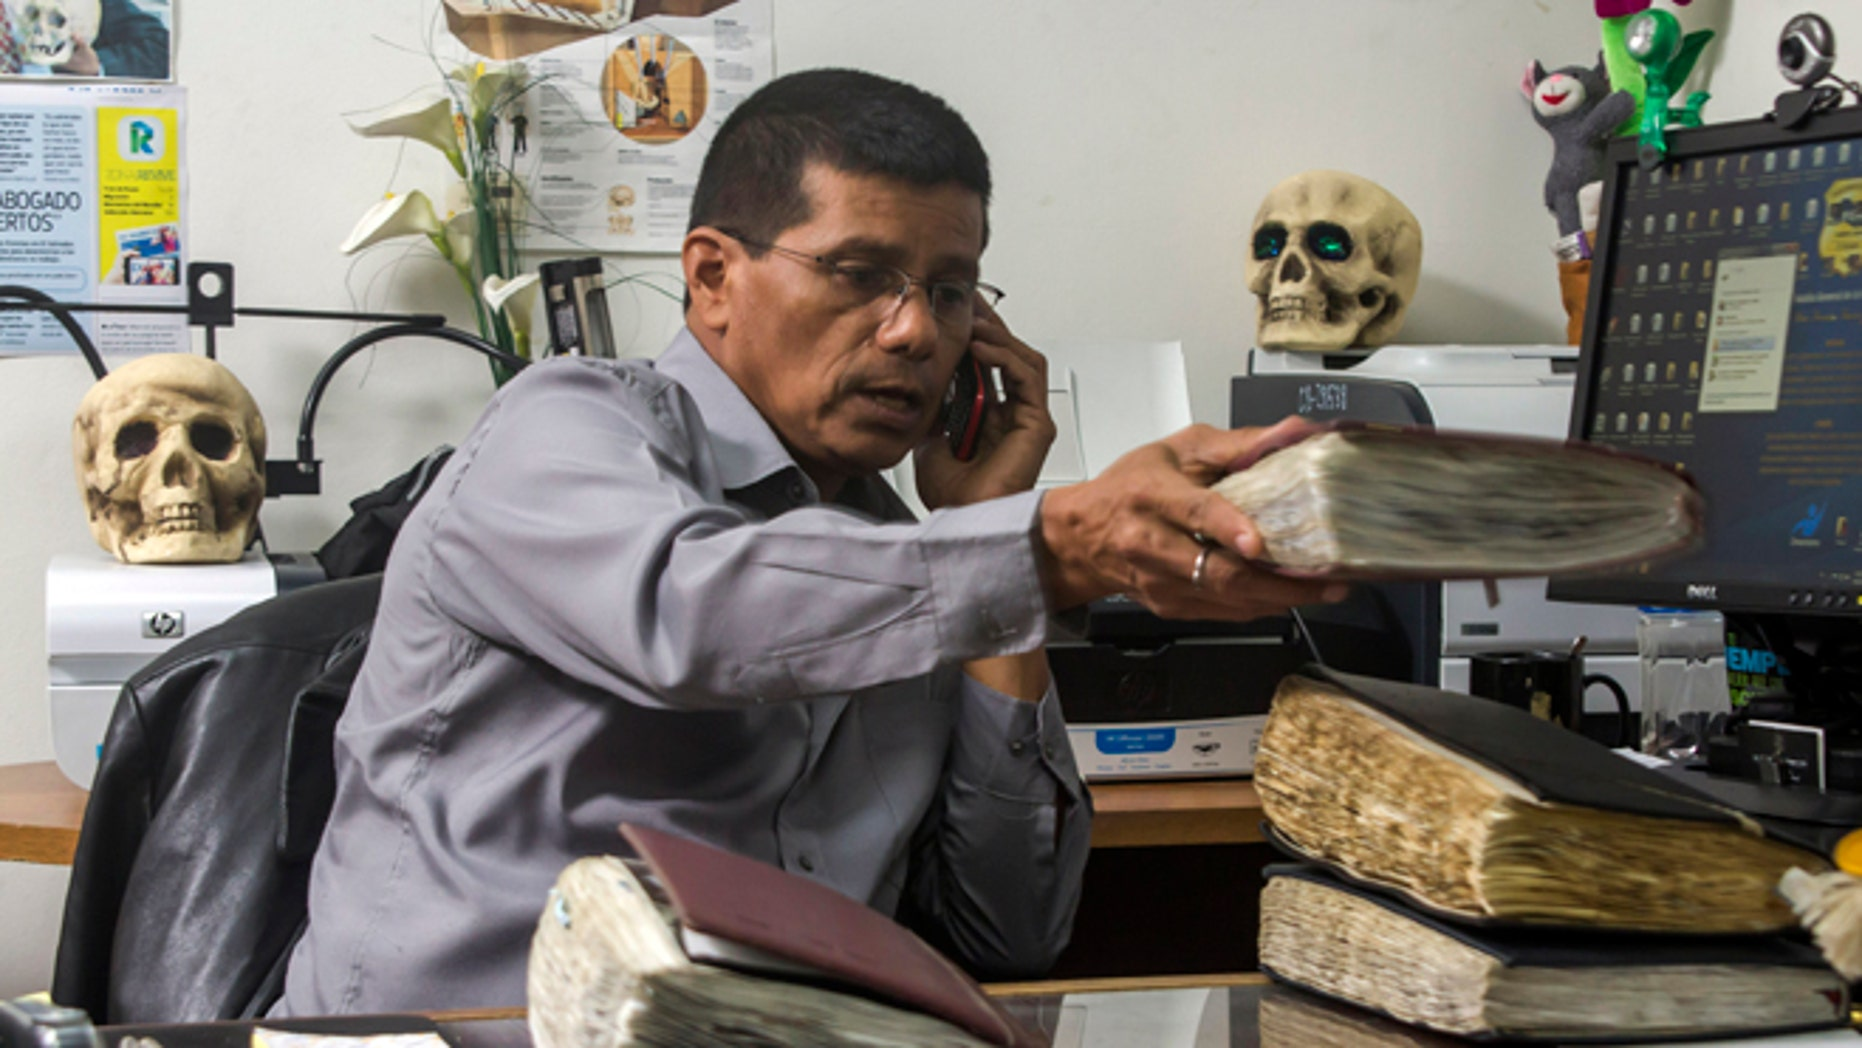 In this Oct. 6, 2014, photo, criminologist Israel Ticas talks on the phone as he stacks his field notebooks, at his office in San Salvador, El Salvador. Ticas got his start making drawings of the dead and models of crime scenes. He studied forensic science on his own and in 2002, convinced the attorney general to give him an office and authority for excavating clandestine cemeteries. (AP Photo/Salvador Melendez)